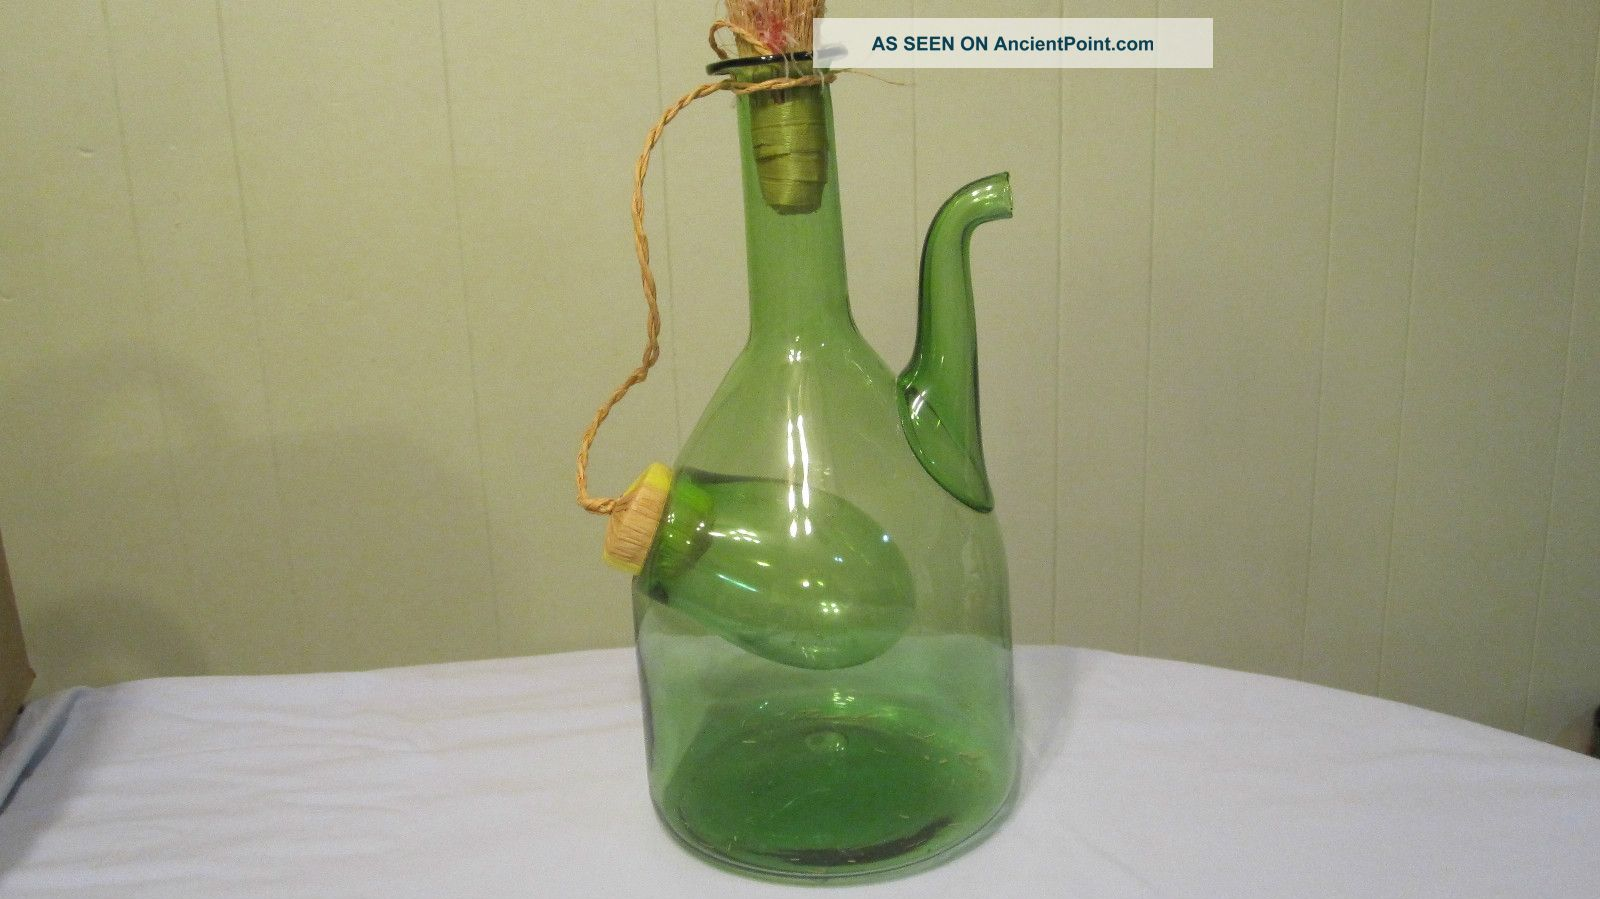 Decorative Jugs And Vases Gt Wholesale Home Decor Gt Decorative Vases Gt Art Glass Whale